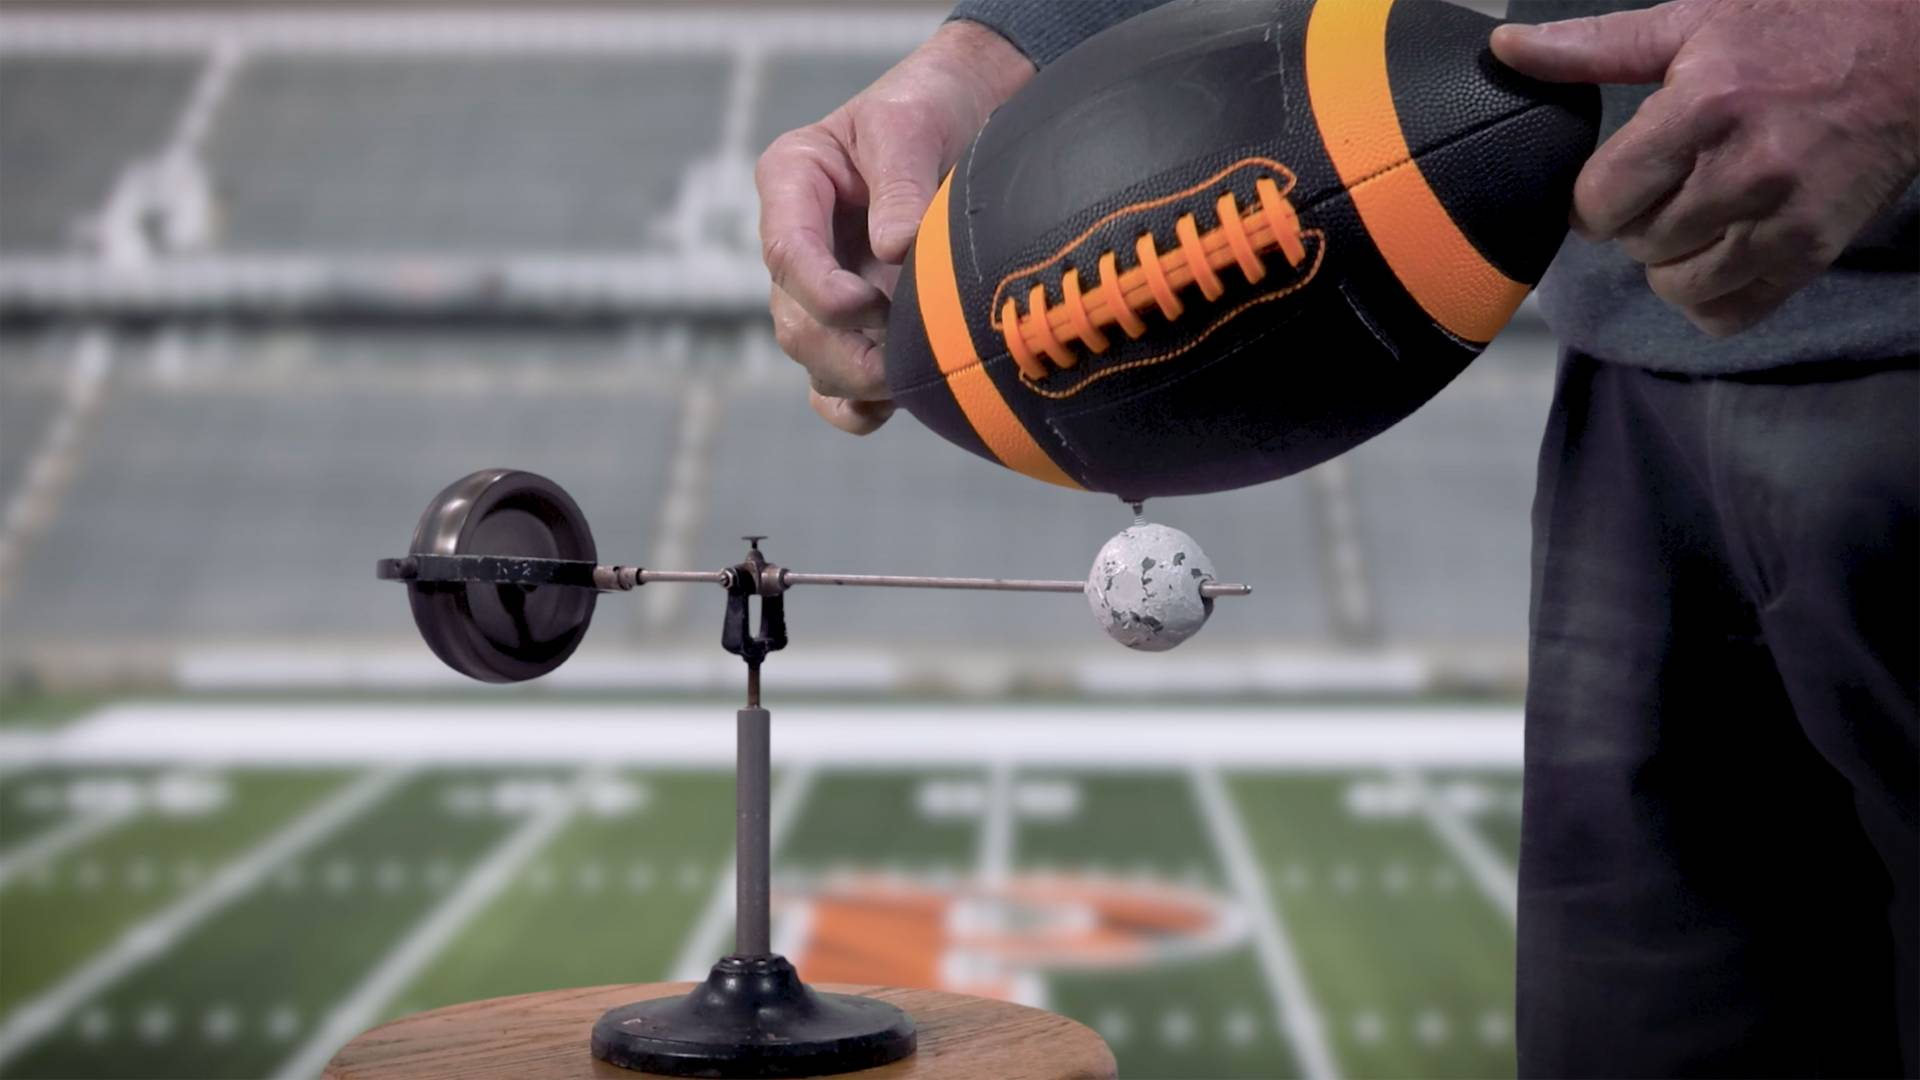 Gyroscope and football